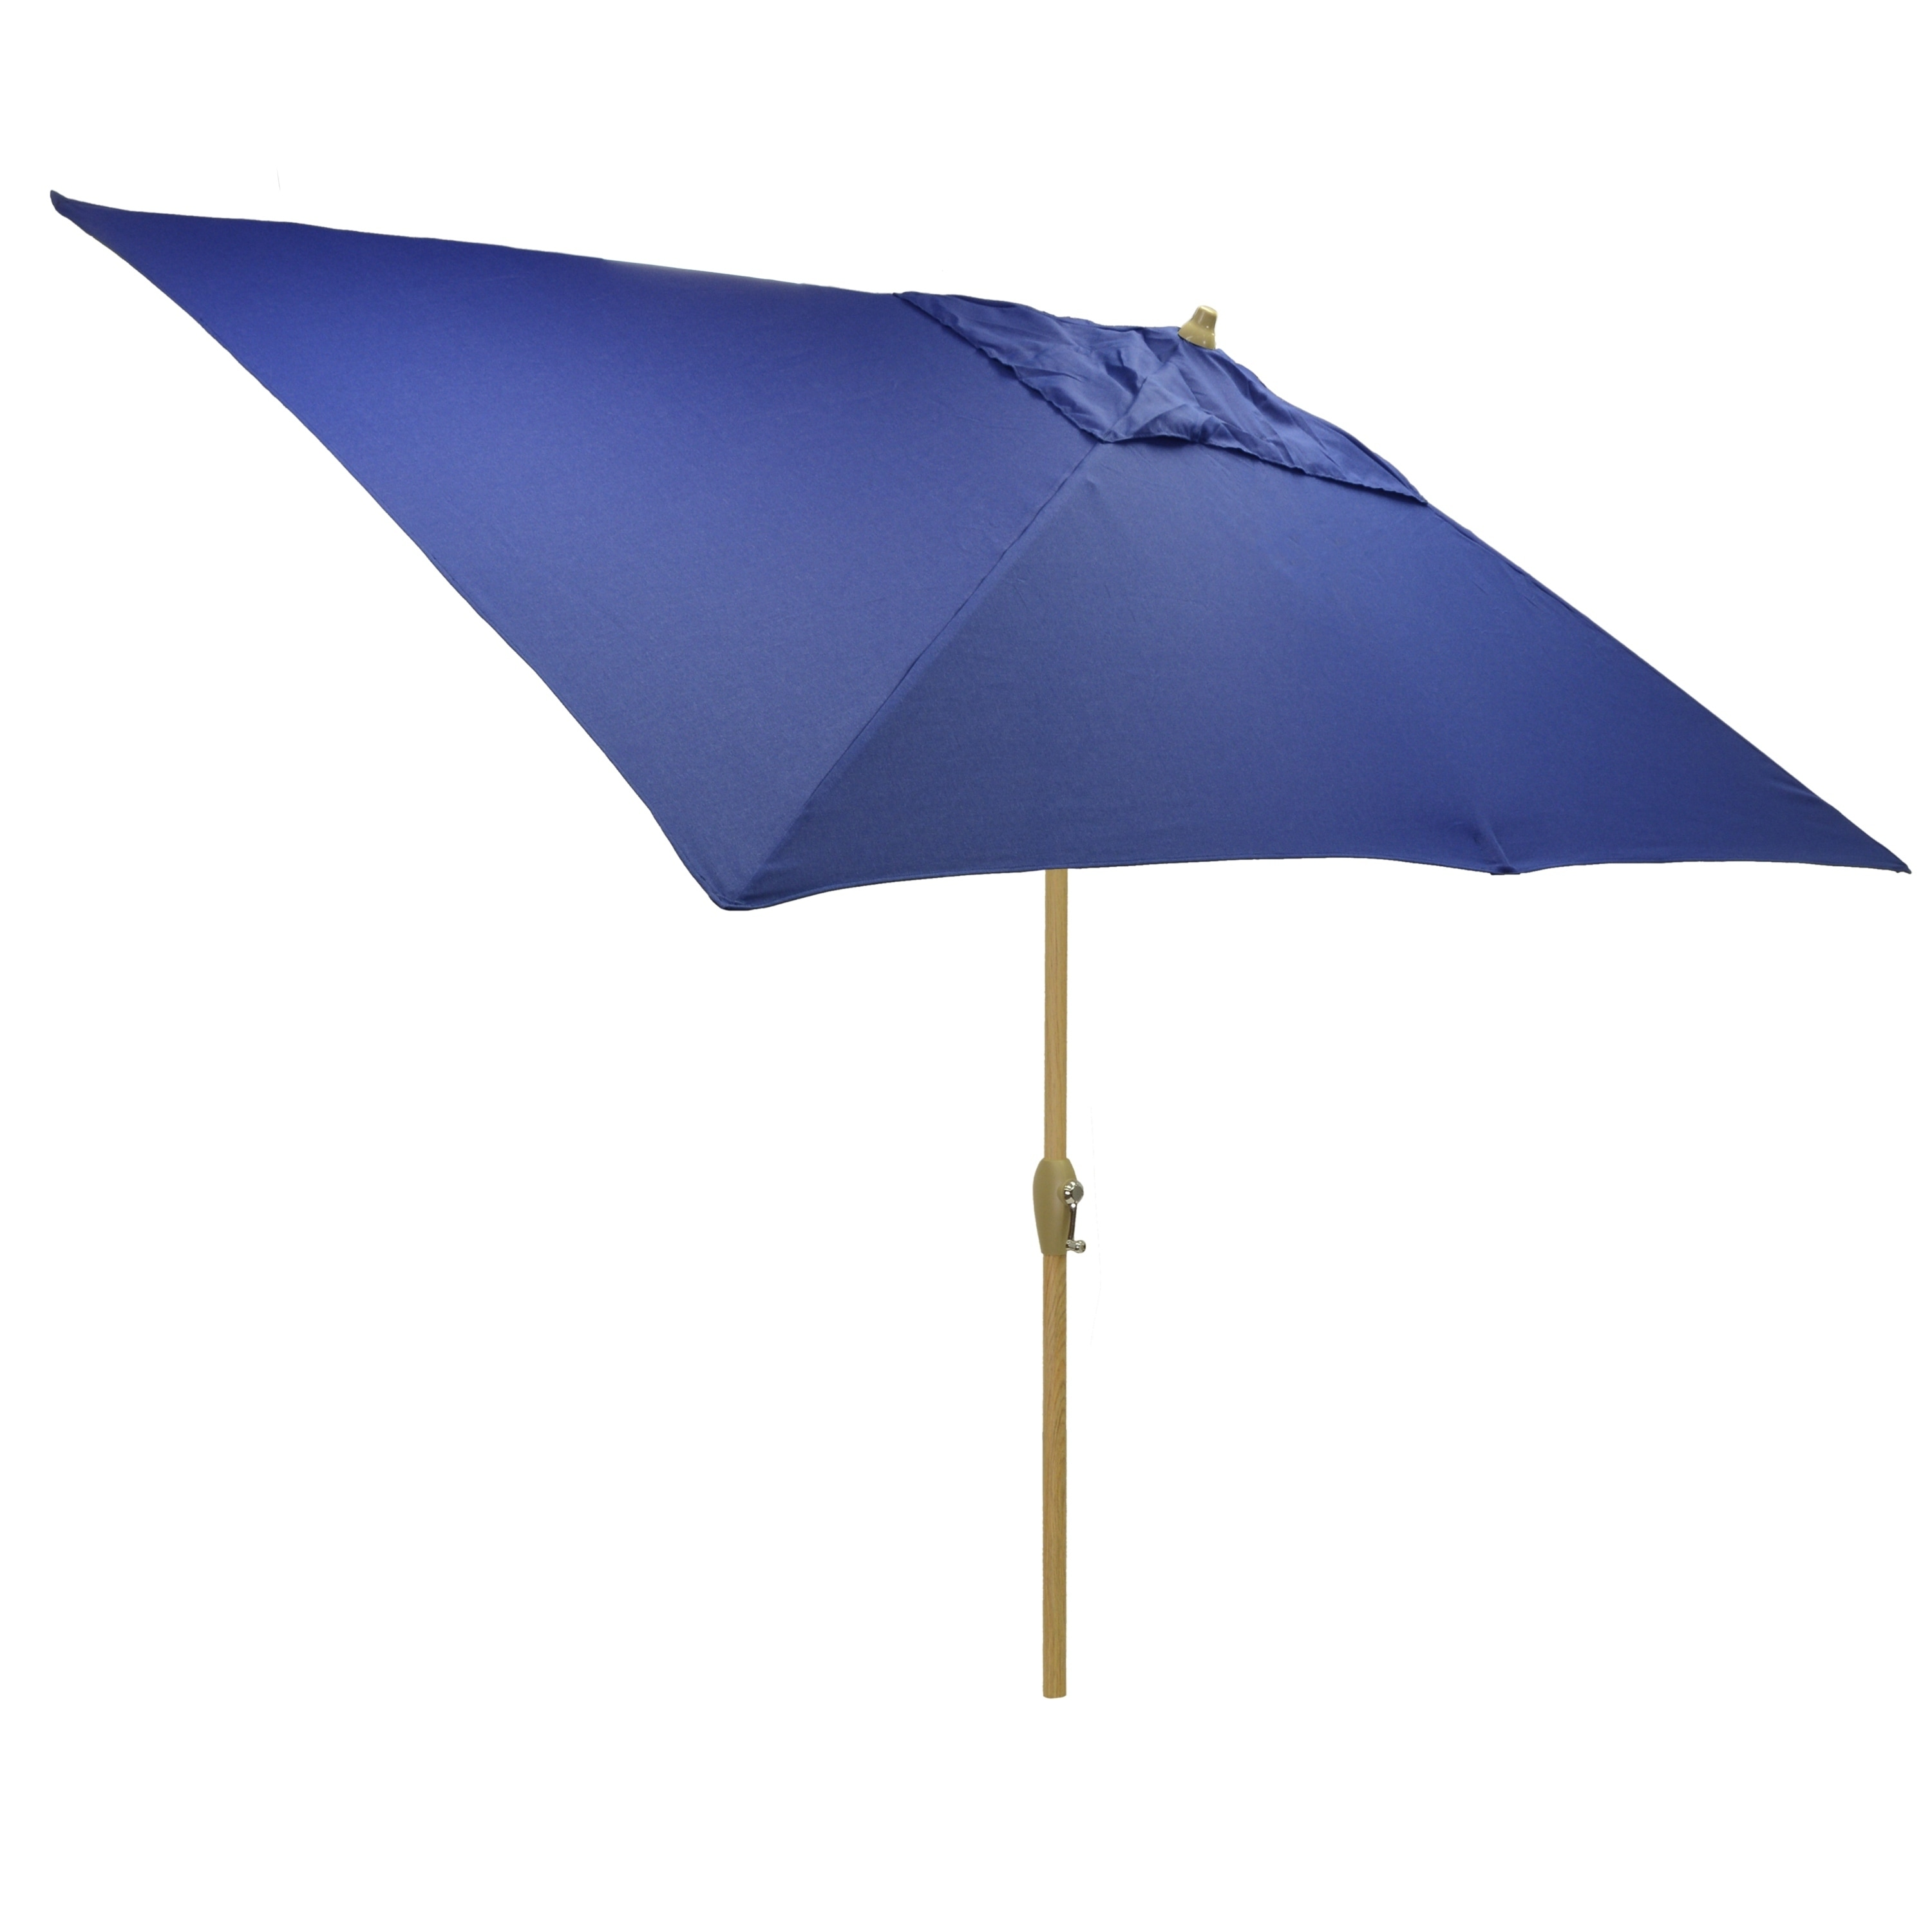 Delightful Shop 6.5x10u0027 Rectangular Patio Umbrella With Light Wood Finish Pole   Free  Shipping Today   Overstock.com   21291694